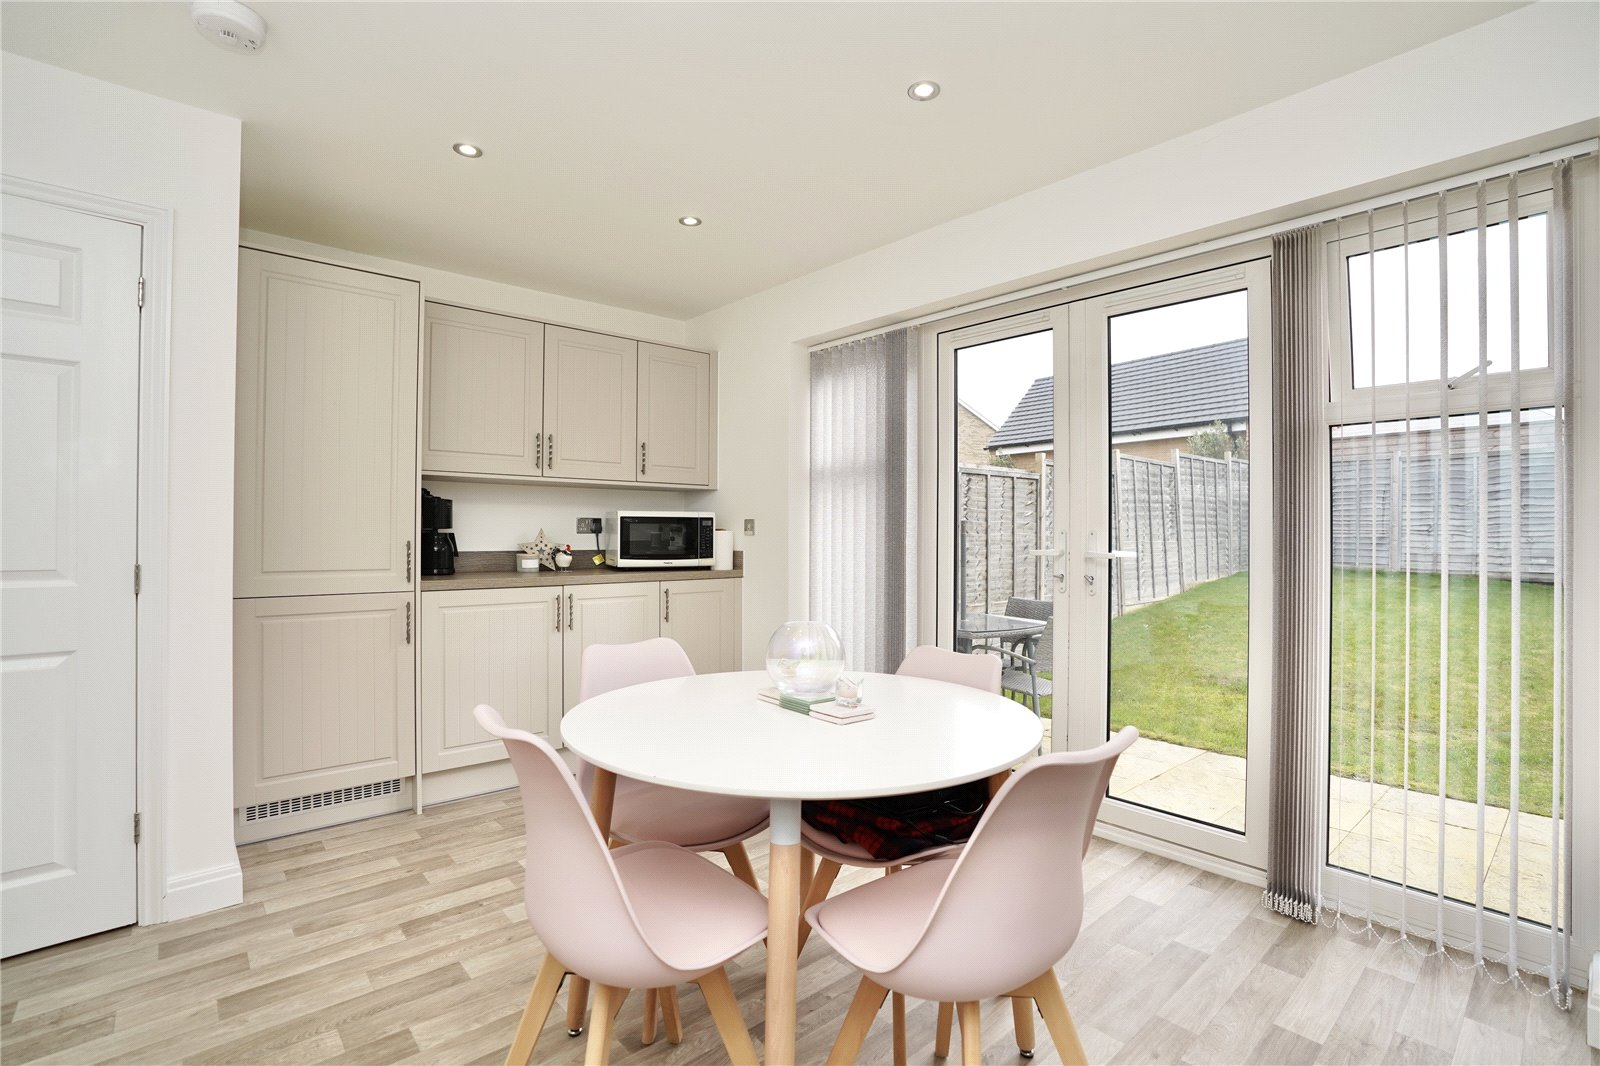 3 bed house for sale in Sawtry, PE28 5ZJ  - Property Image 6